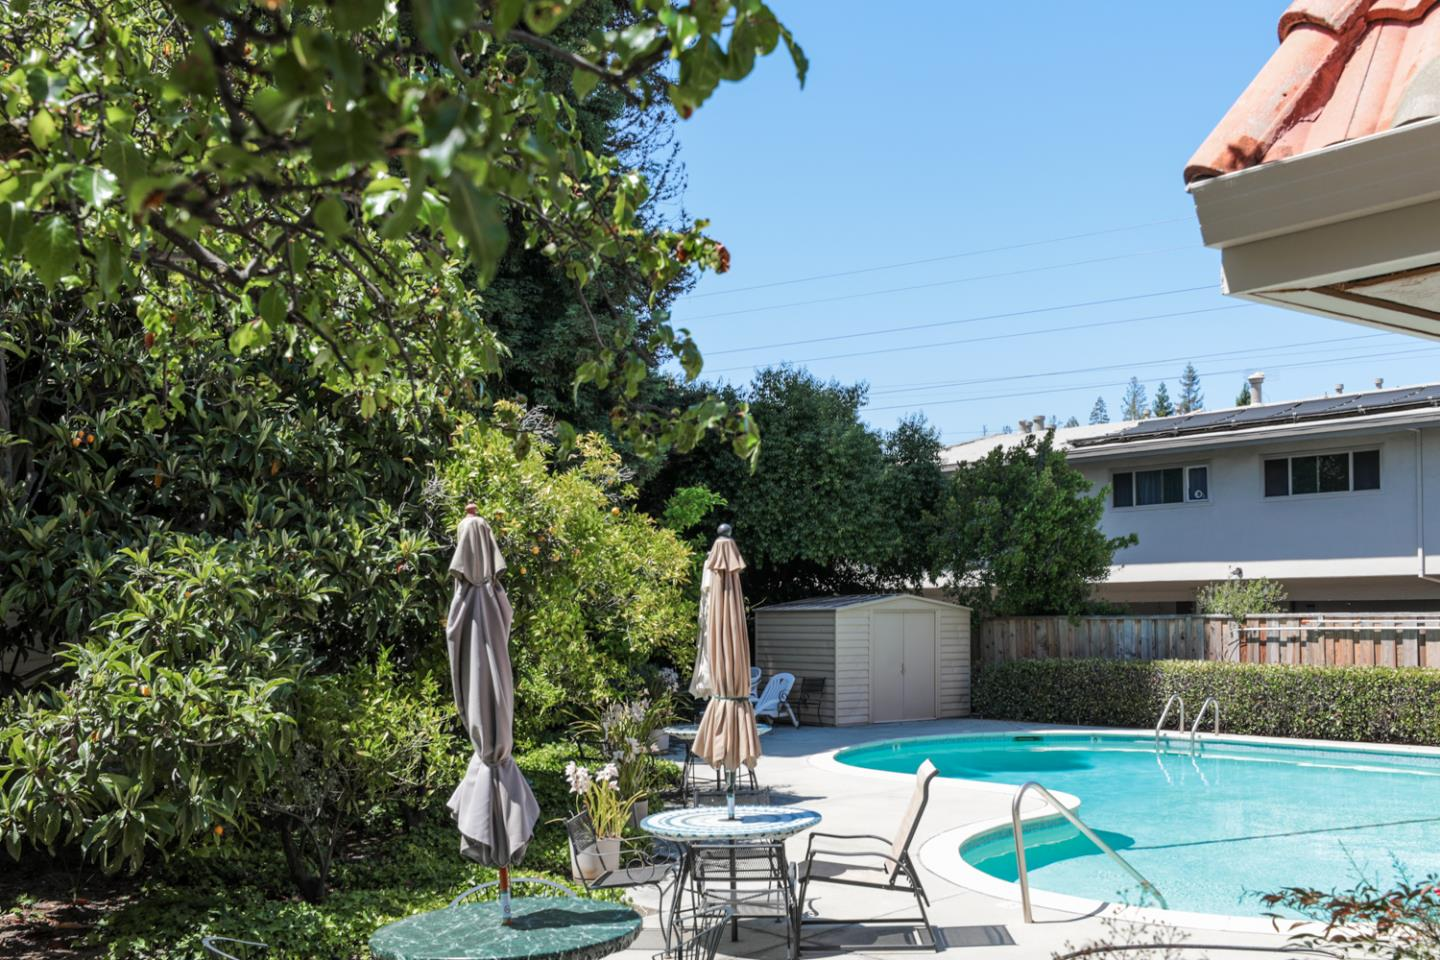 1354 DALE AVE 4, MOUNTAIN VIEW, CA 94040 – DeLeon Realty